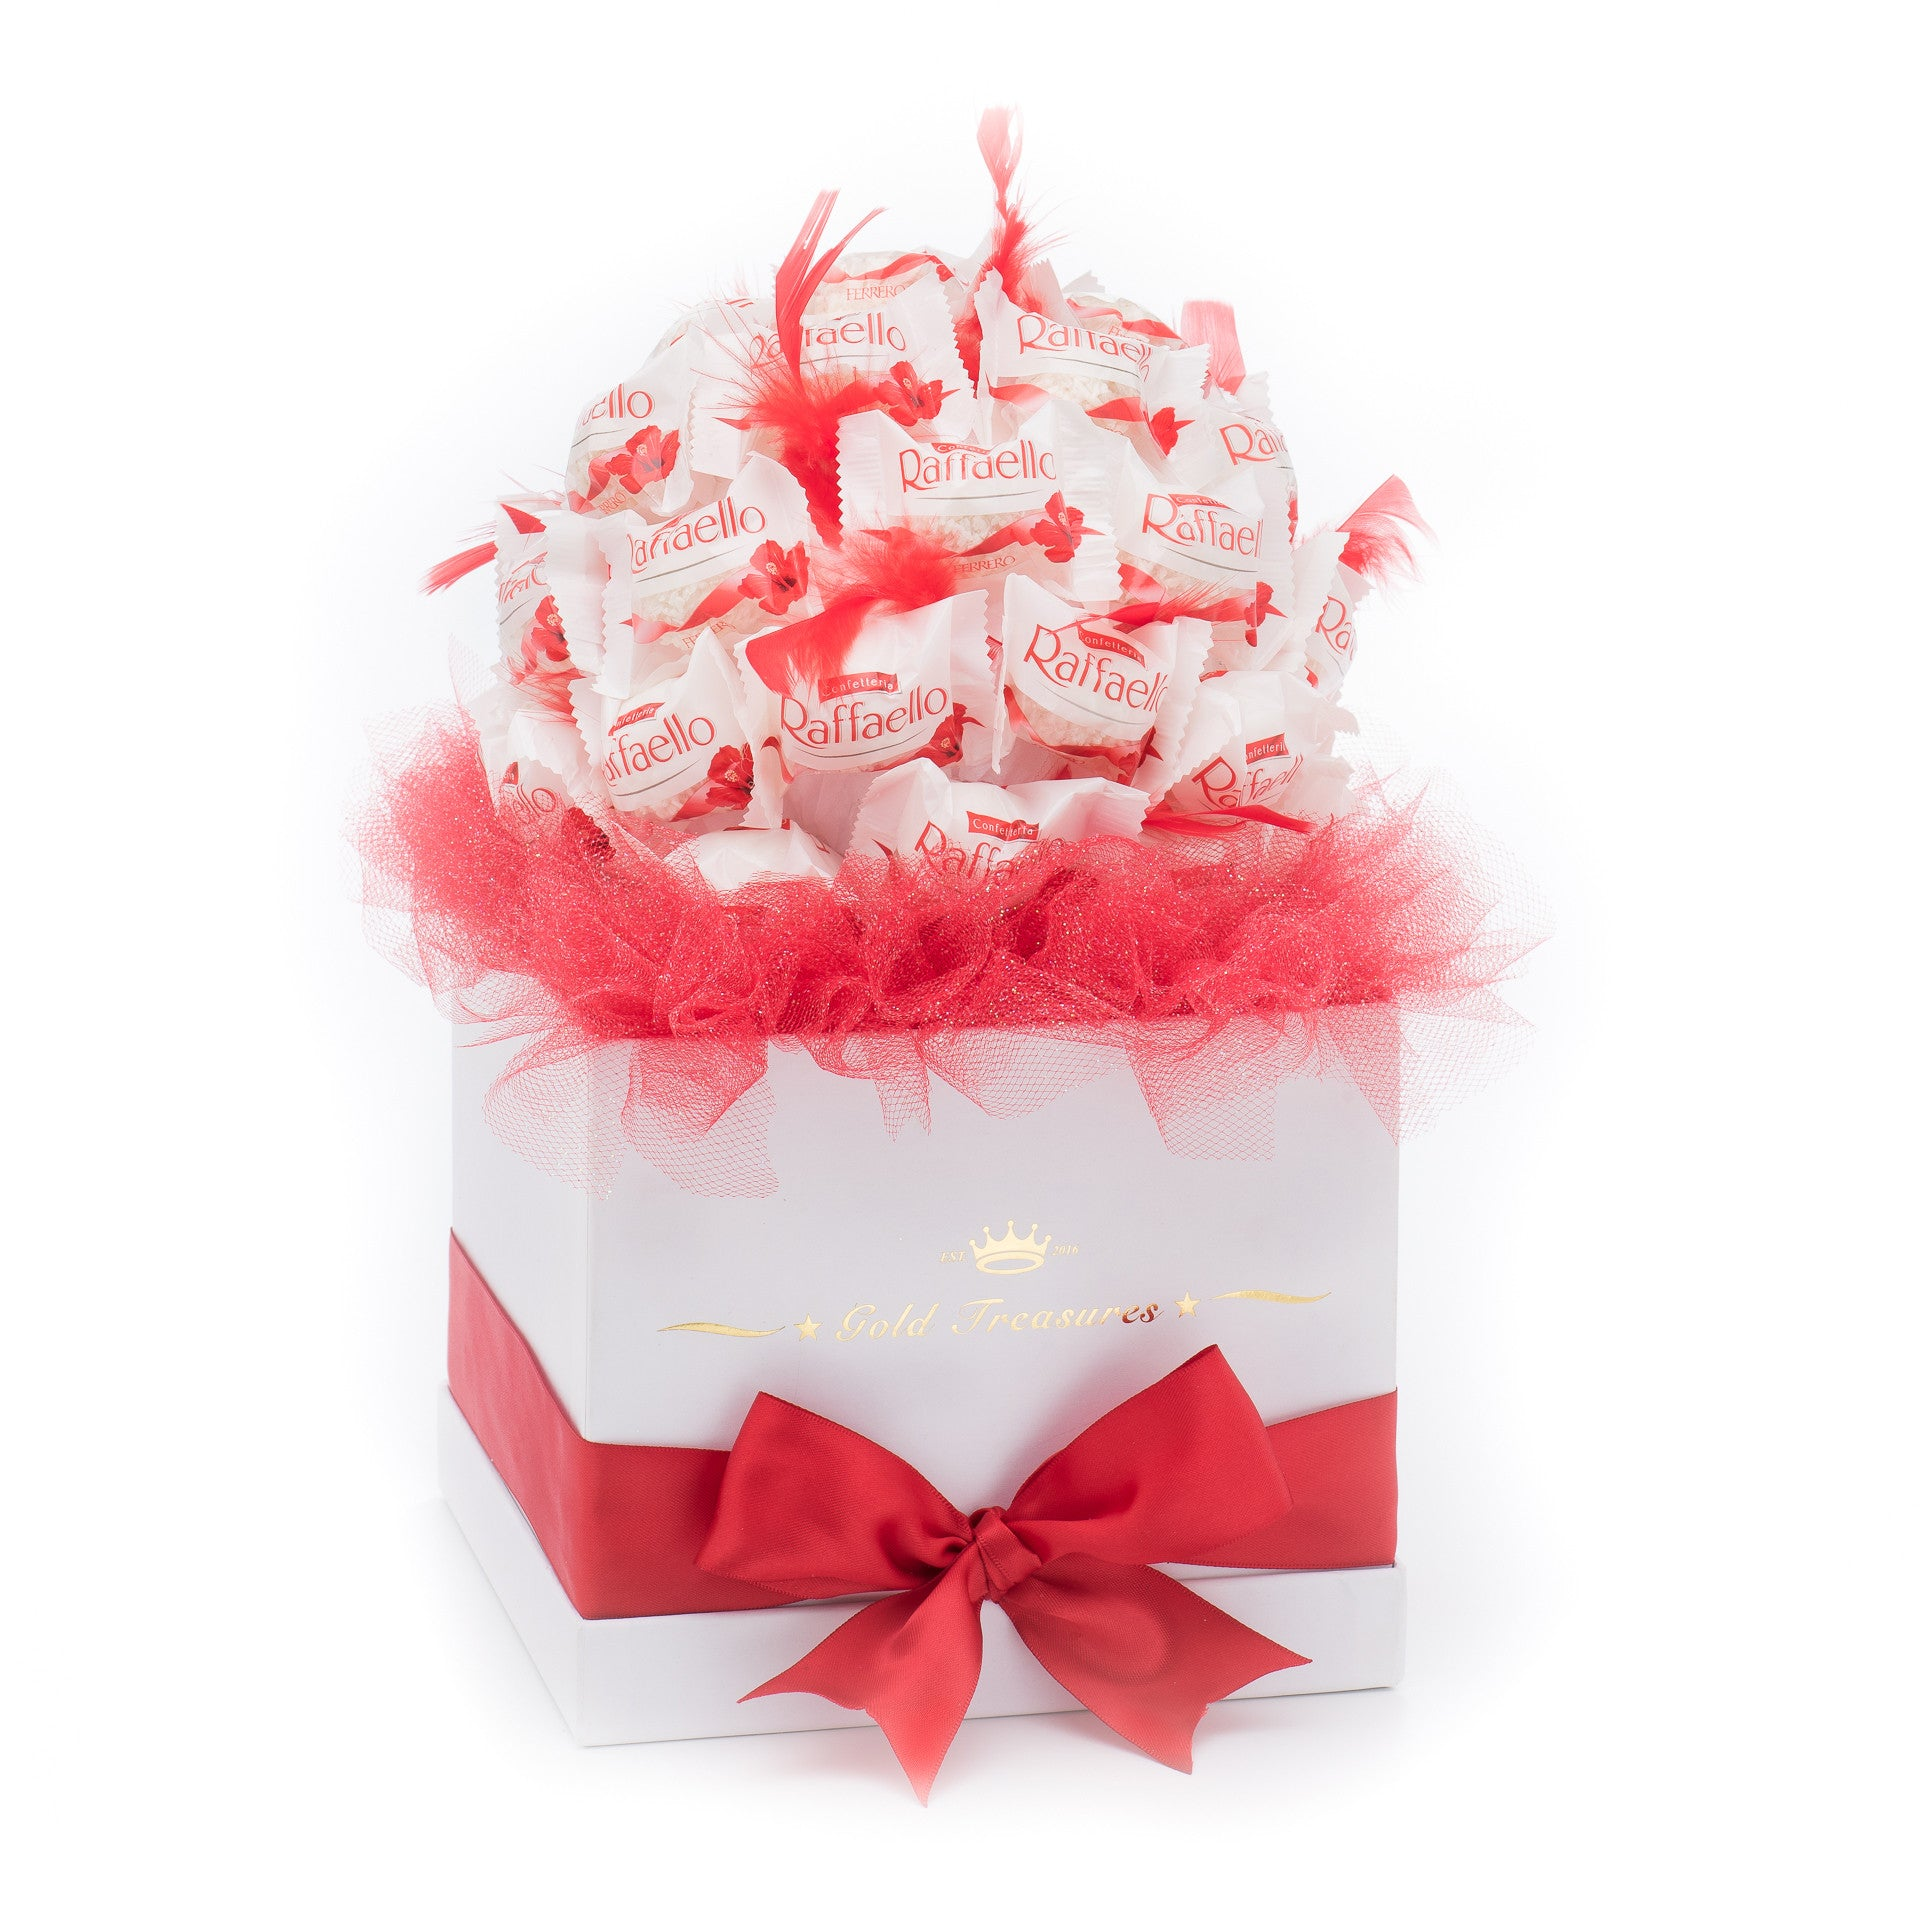 Sweet Temptation: 40 Raffaello Chocolates Bouquet